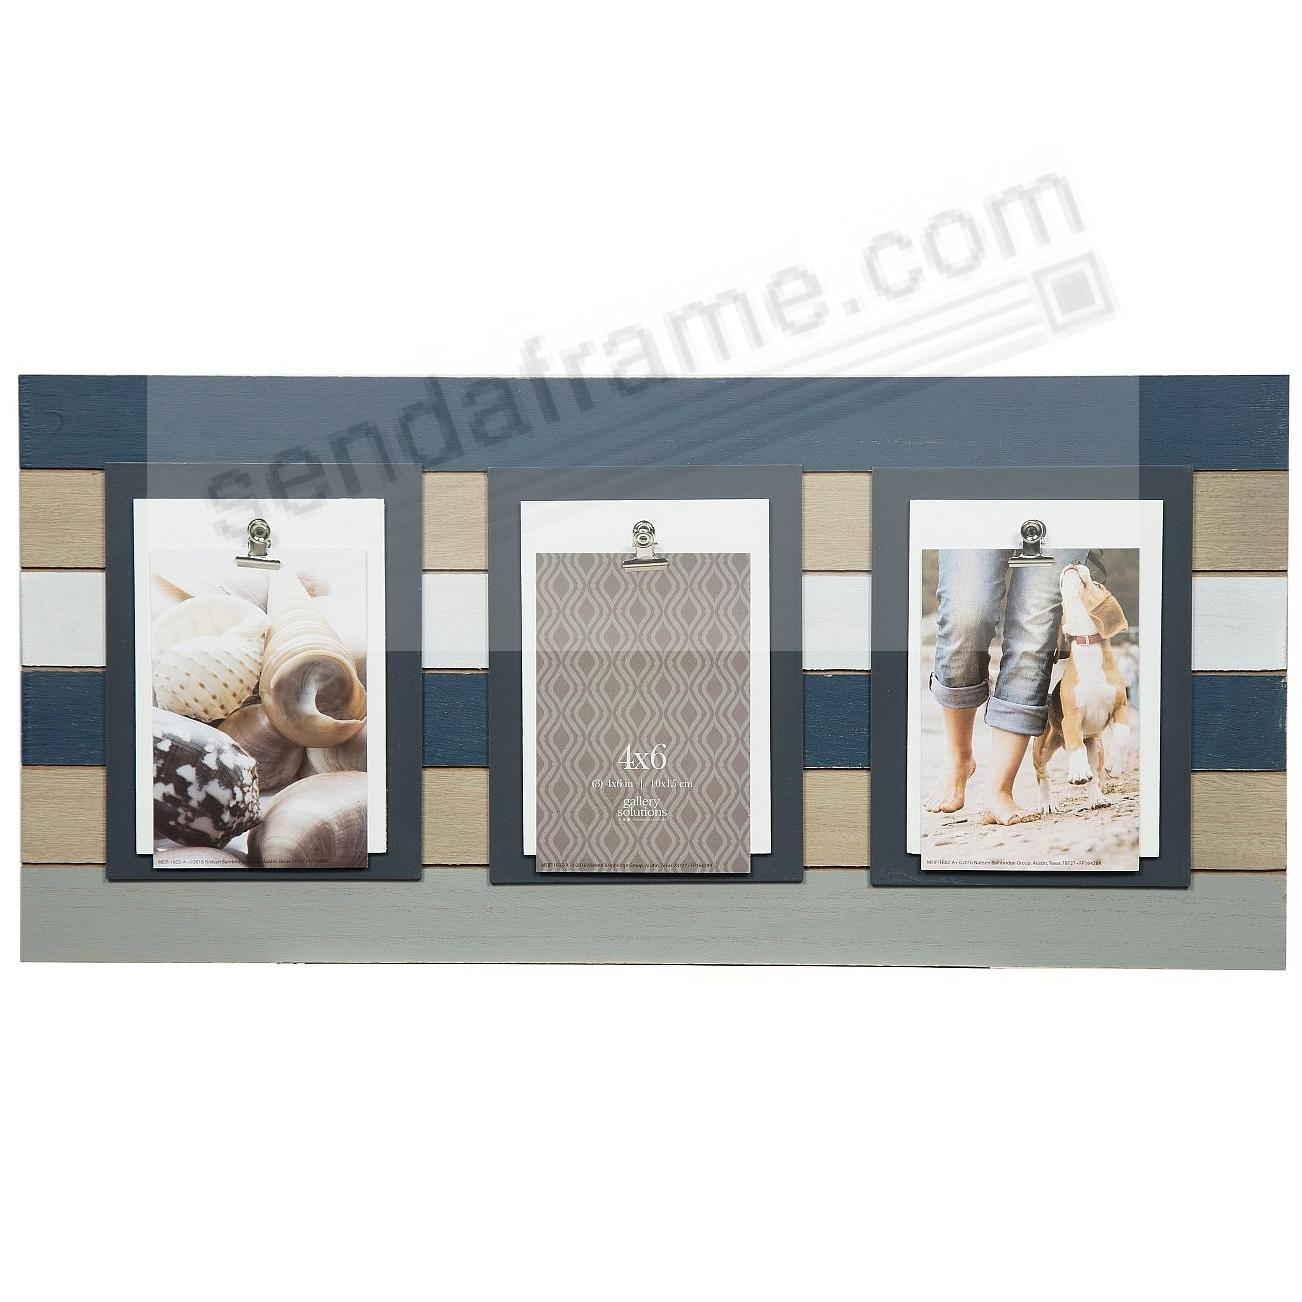 3-CLIP PLANK WOOD frame by Gallery Solutions™